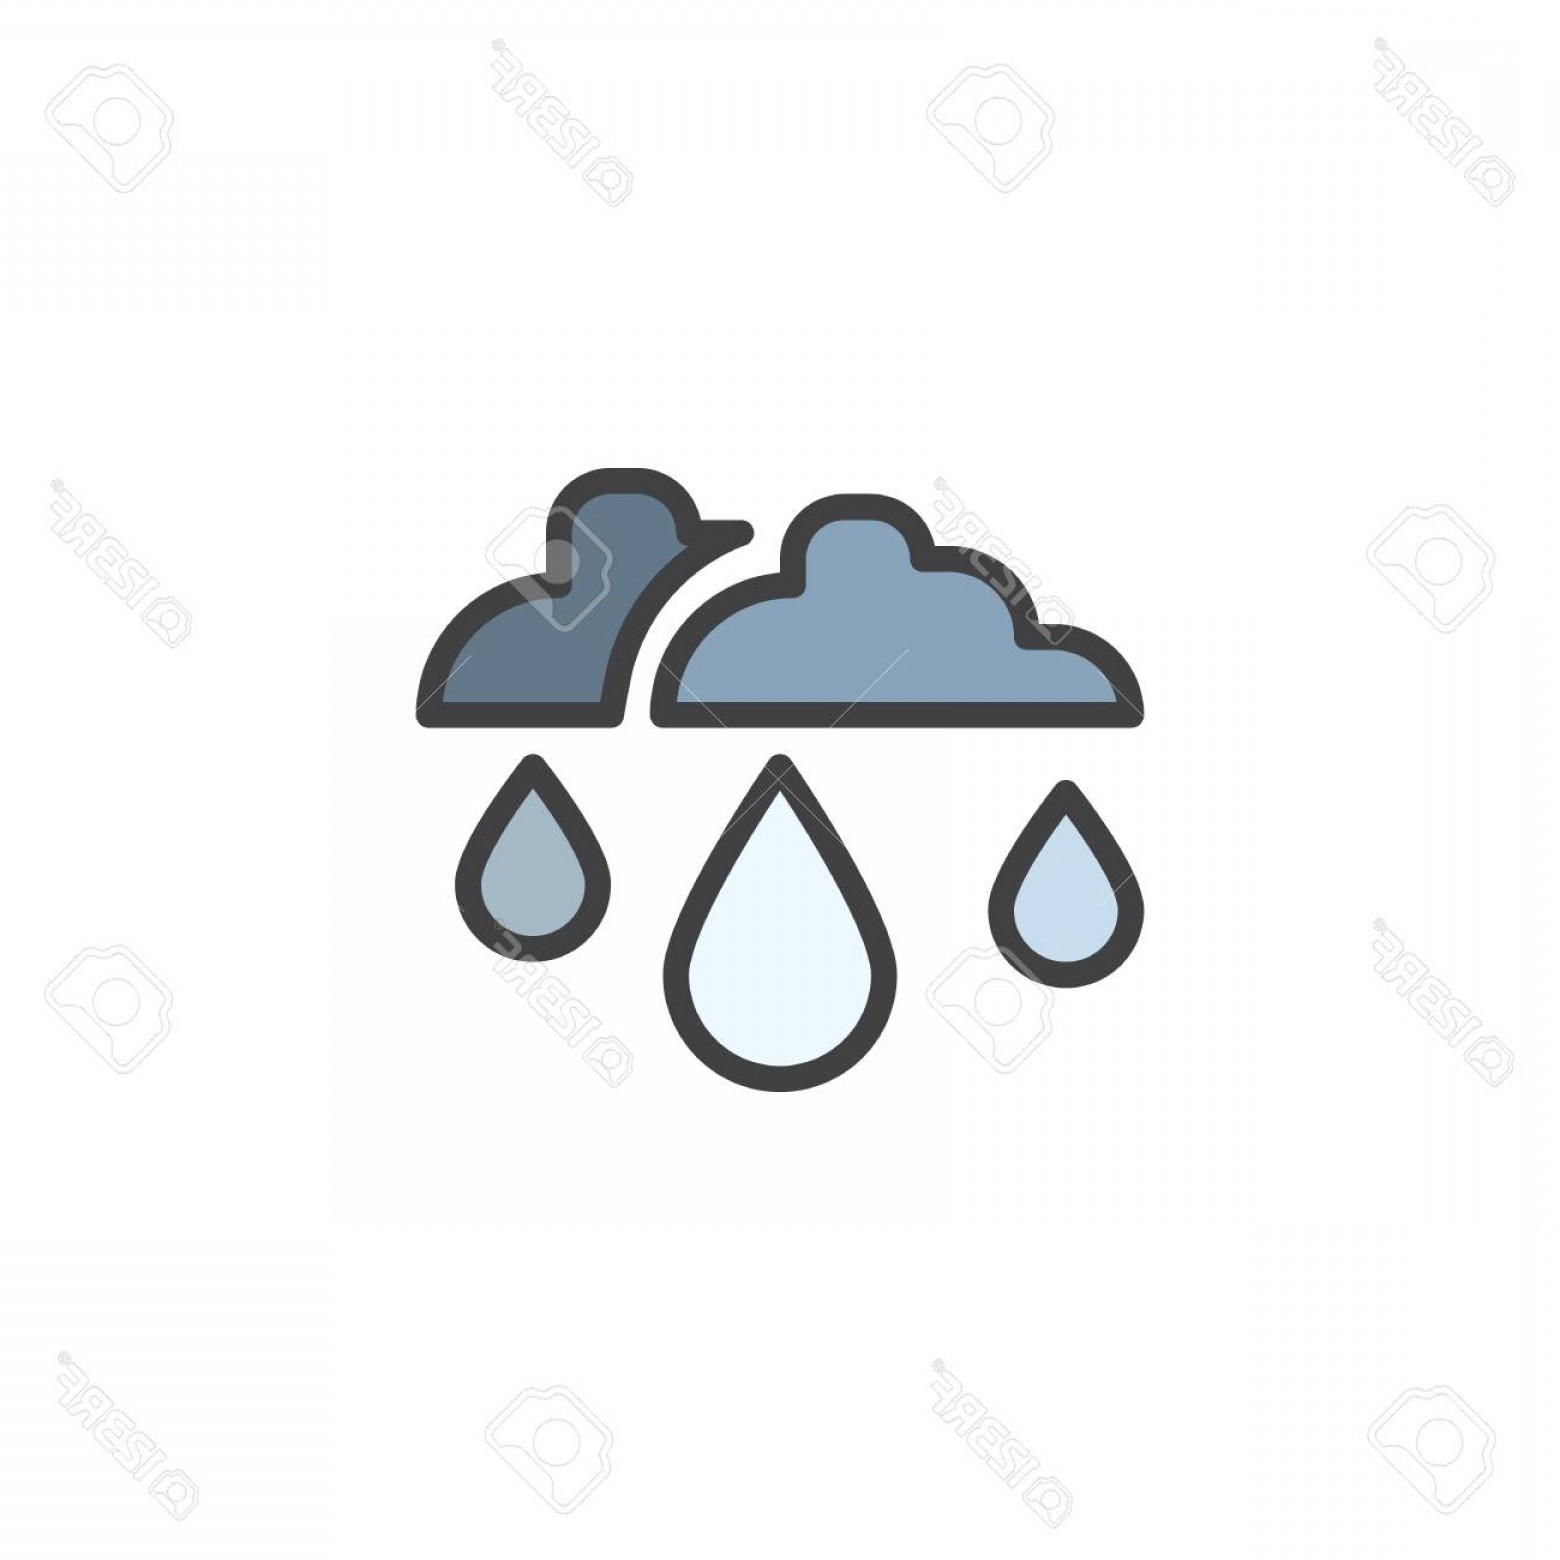 Snow Cone Outline Vector: Photostock Vector Rain Drop And Clouds Filled Outline Icon